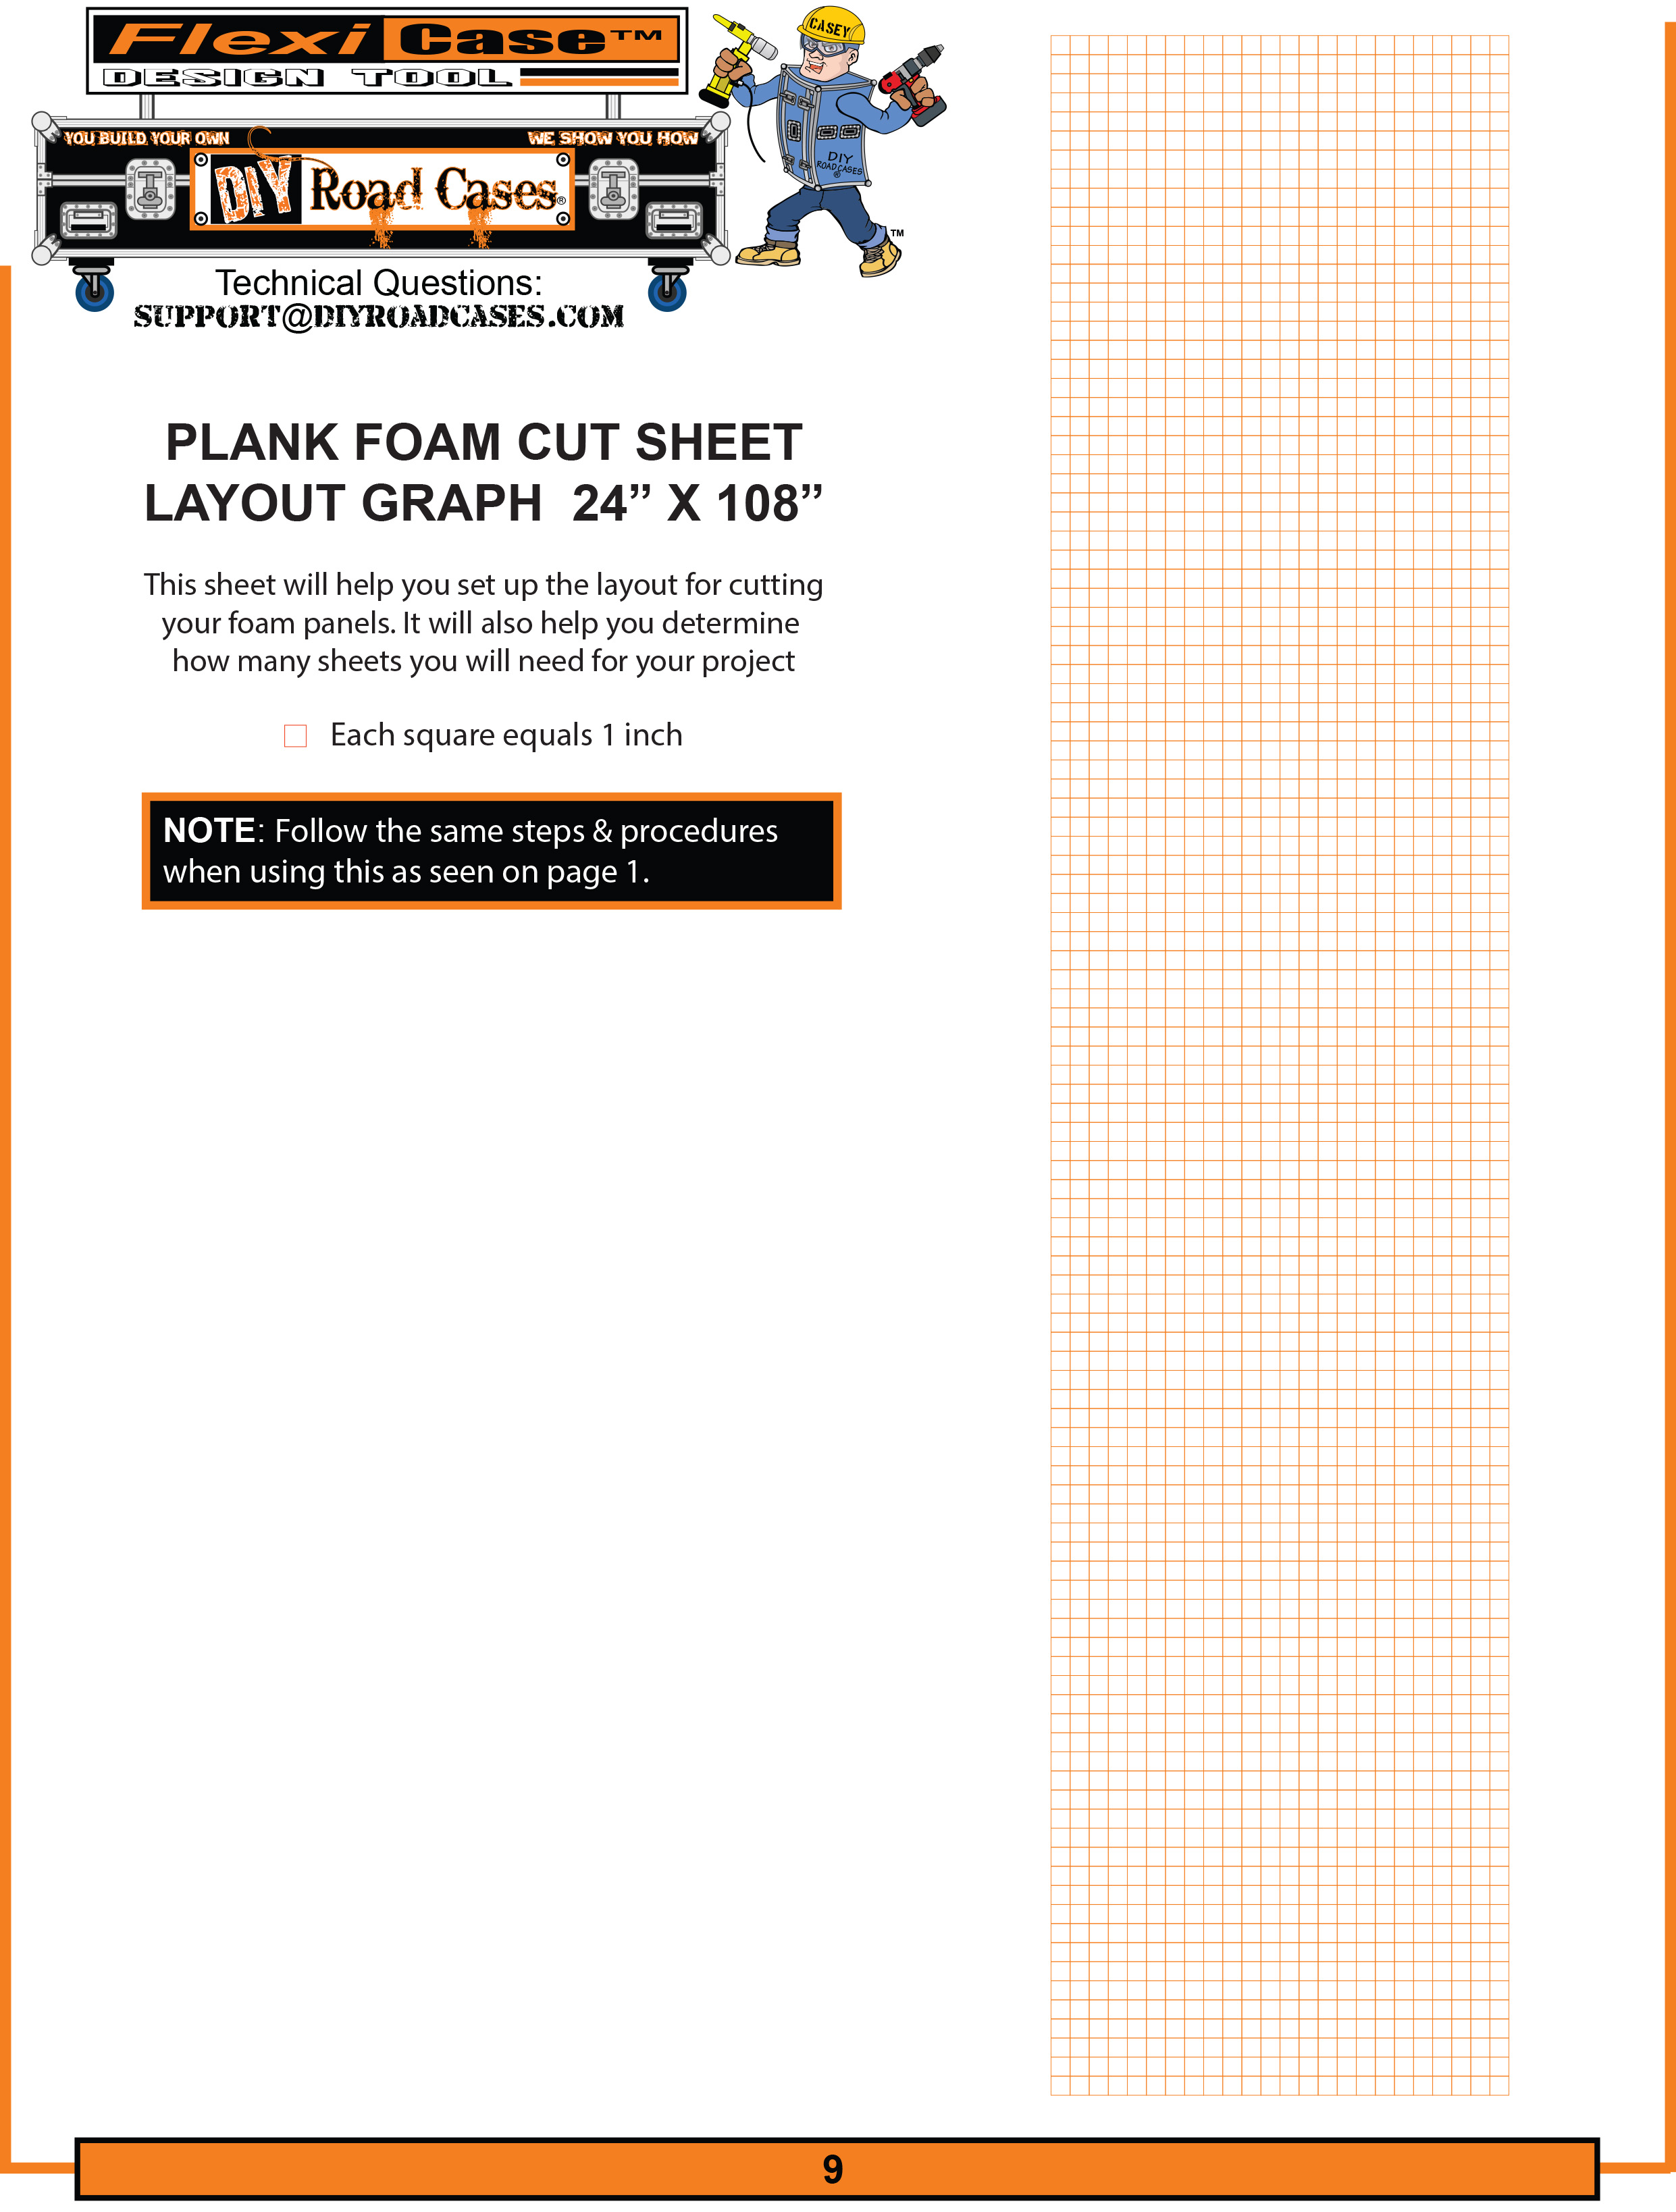 plank-foams-cut-sheet-layout-graph.jpg